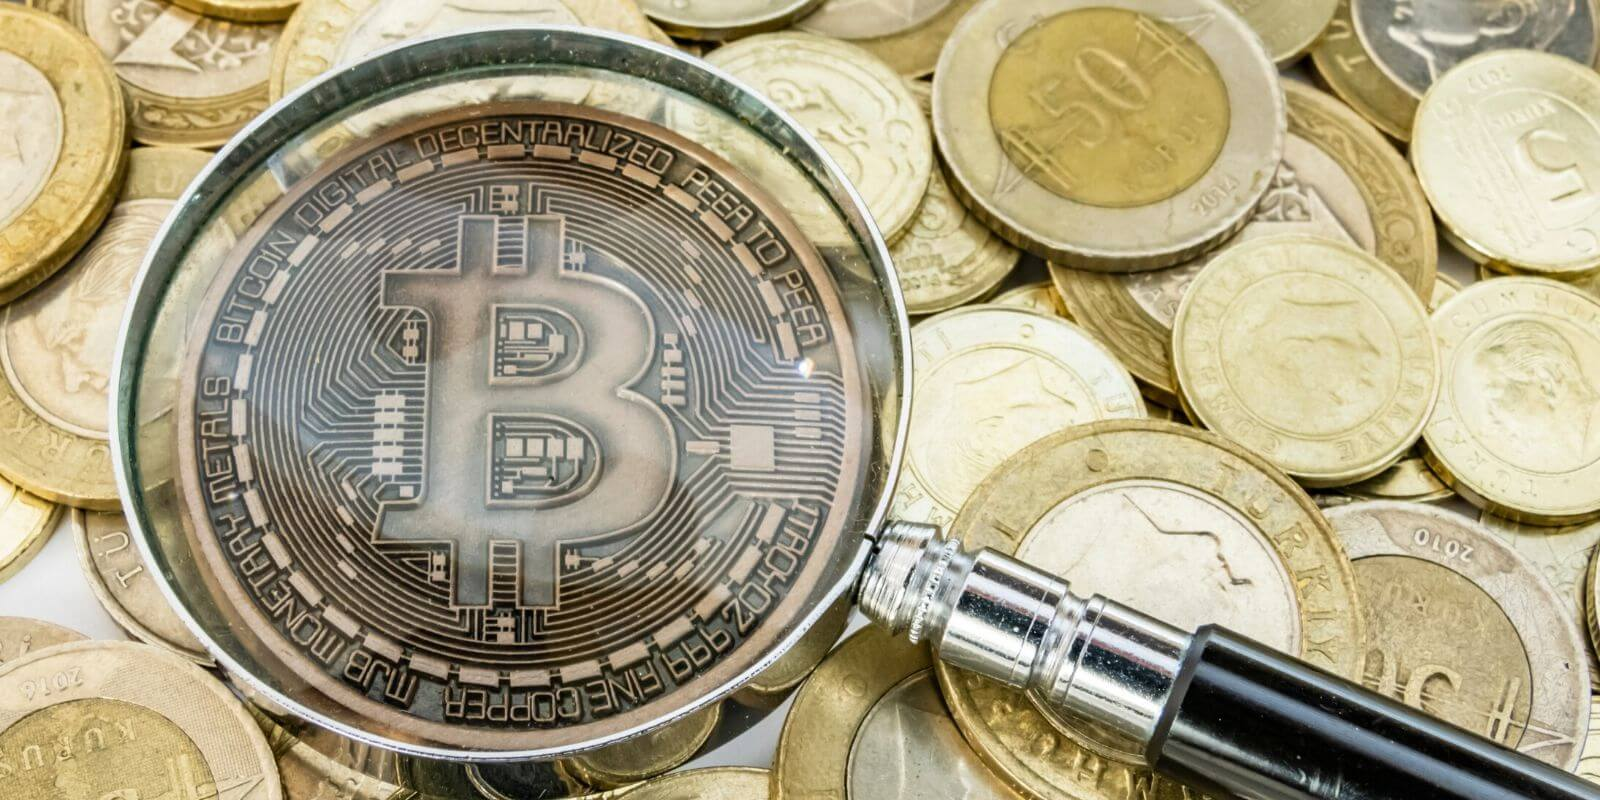 Bitcoins cest quoi un spam sports betting legal in what states